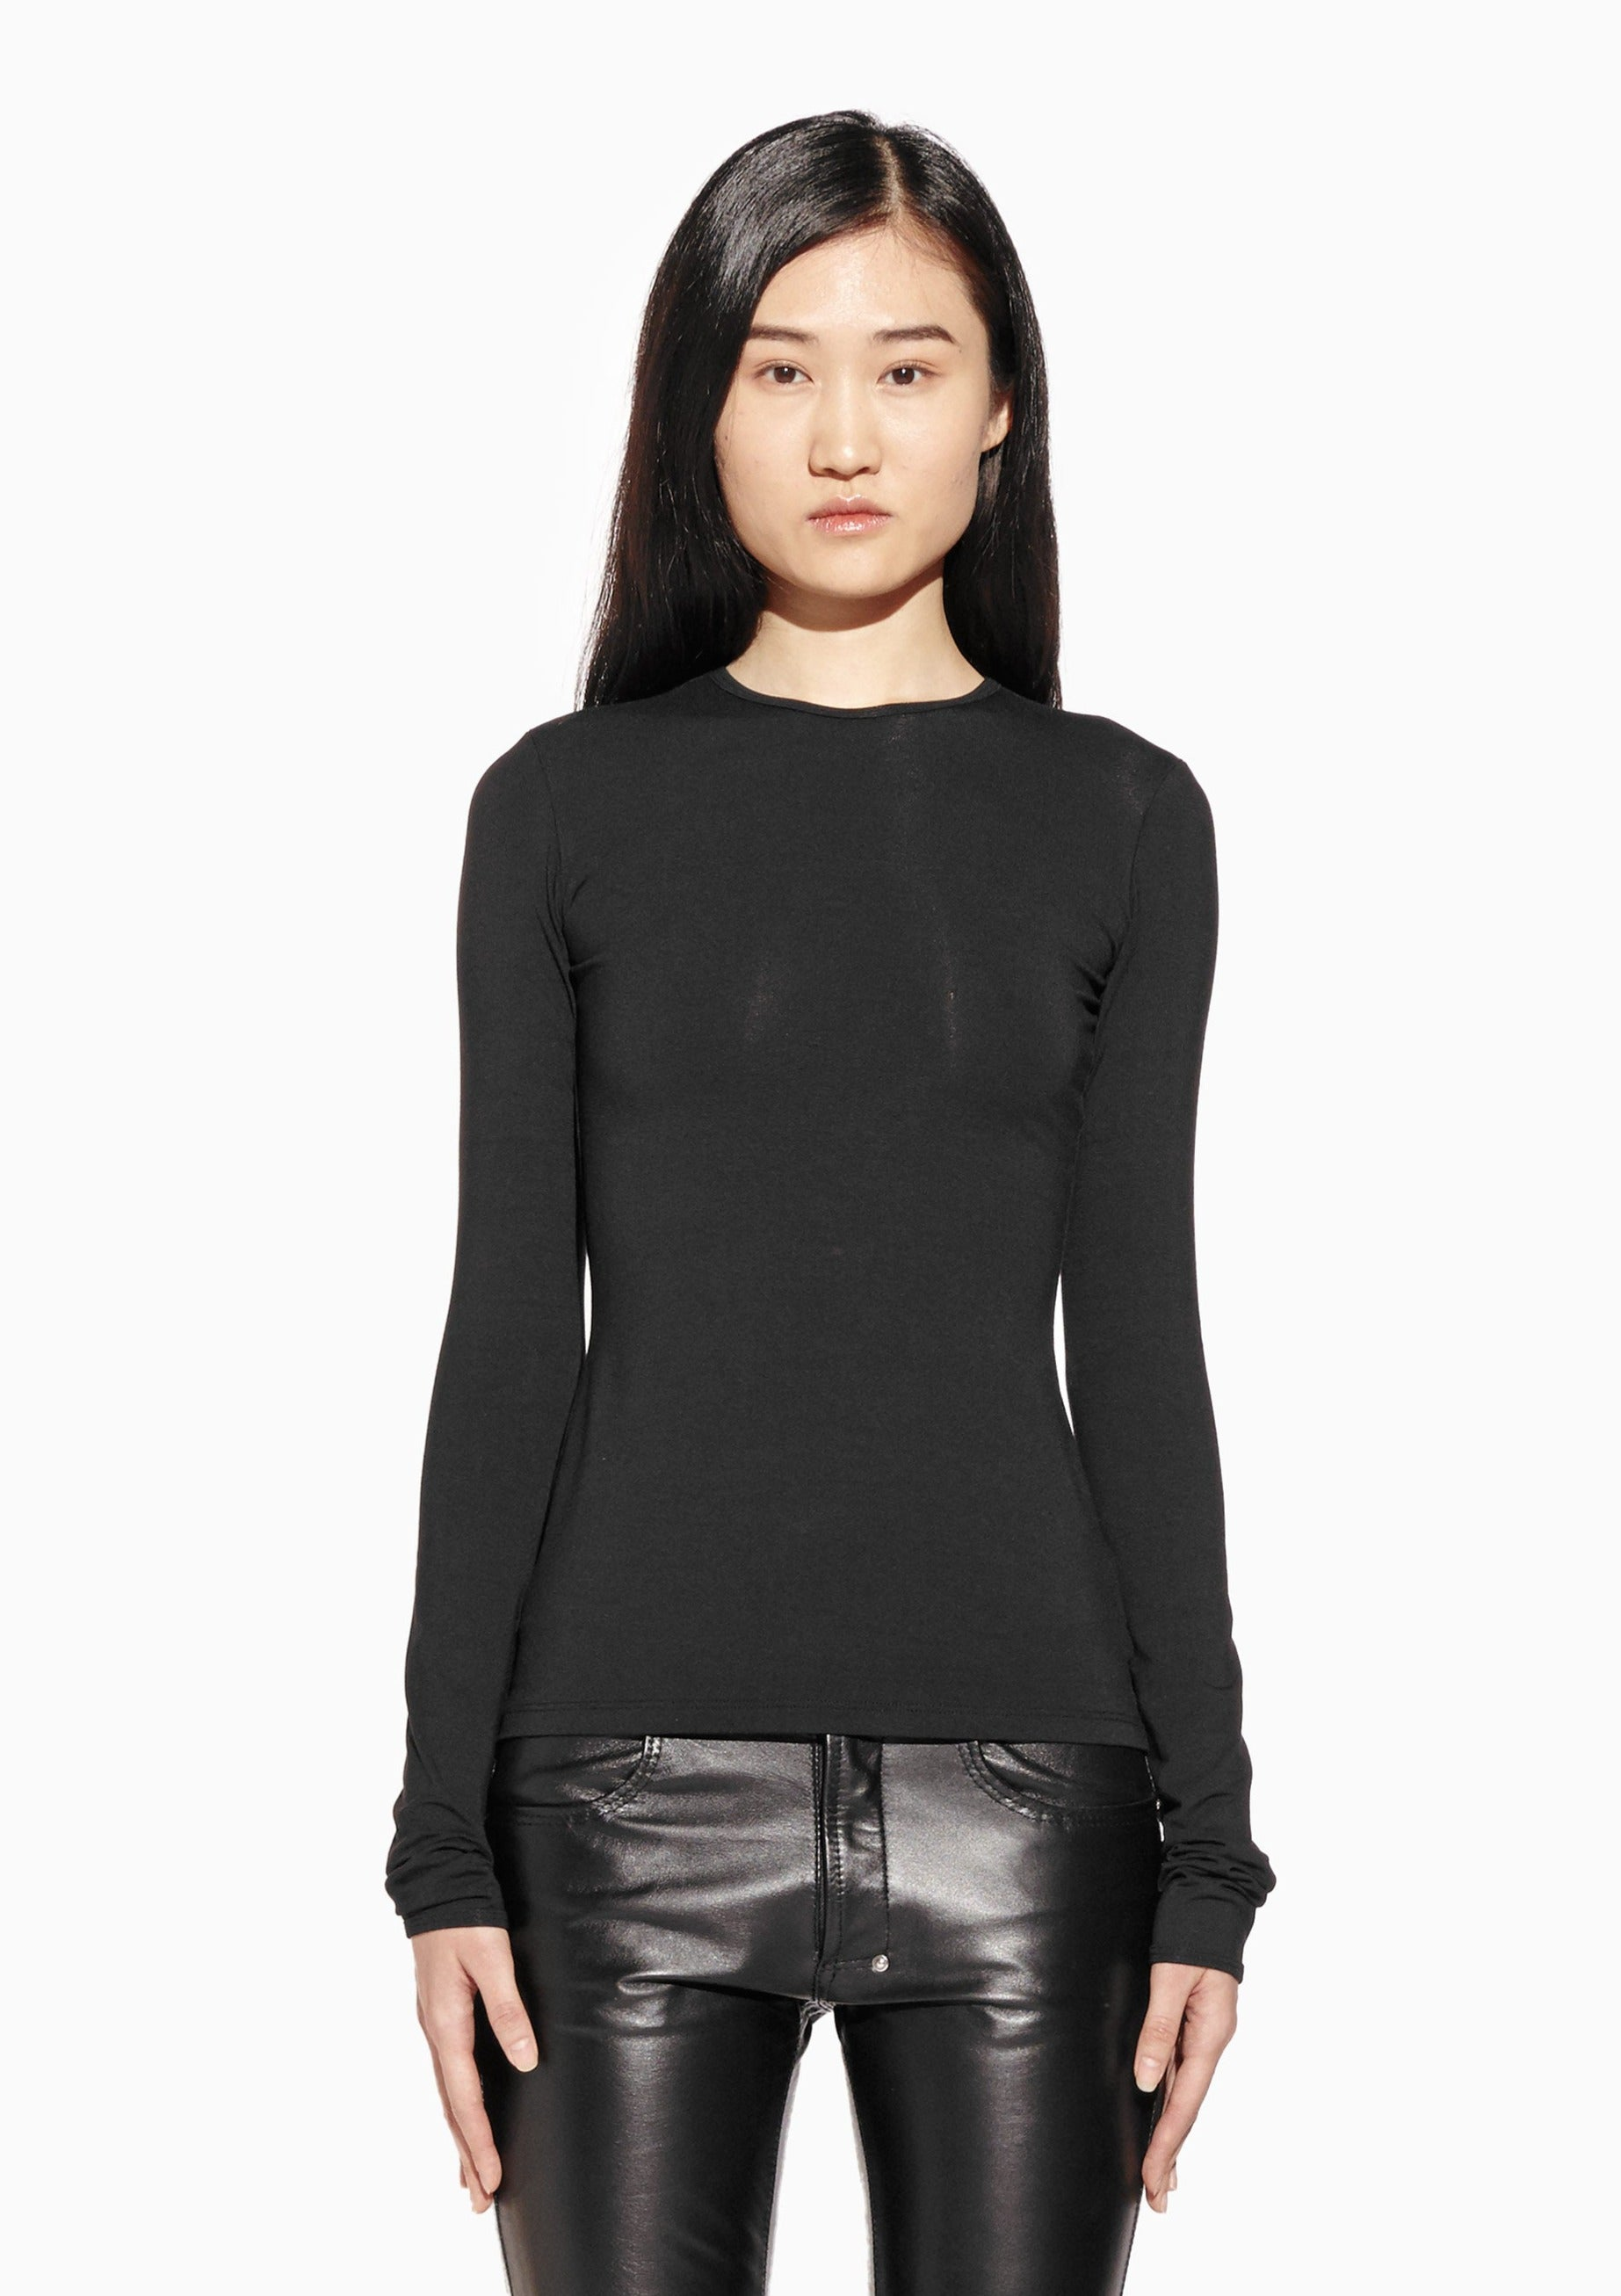 AUDREY Long Sleeve - Crew-Neck, Fitted, Viscose Jersey Top